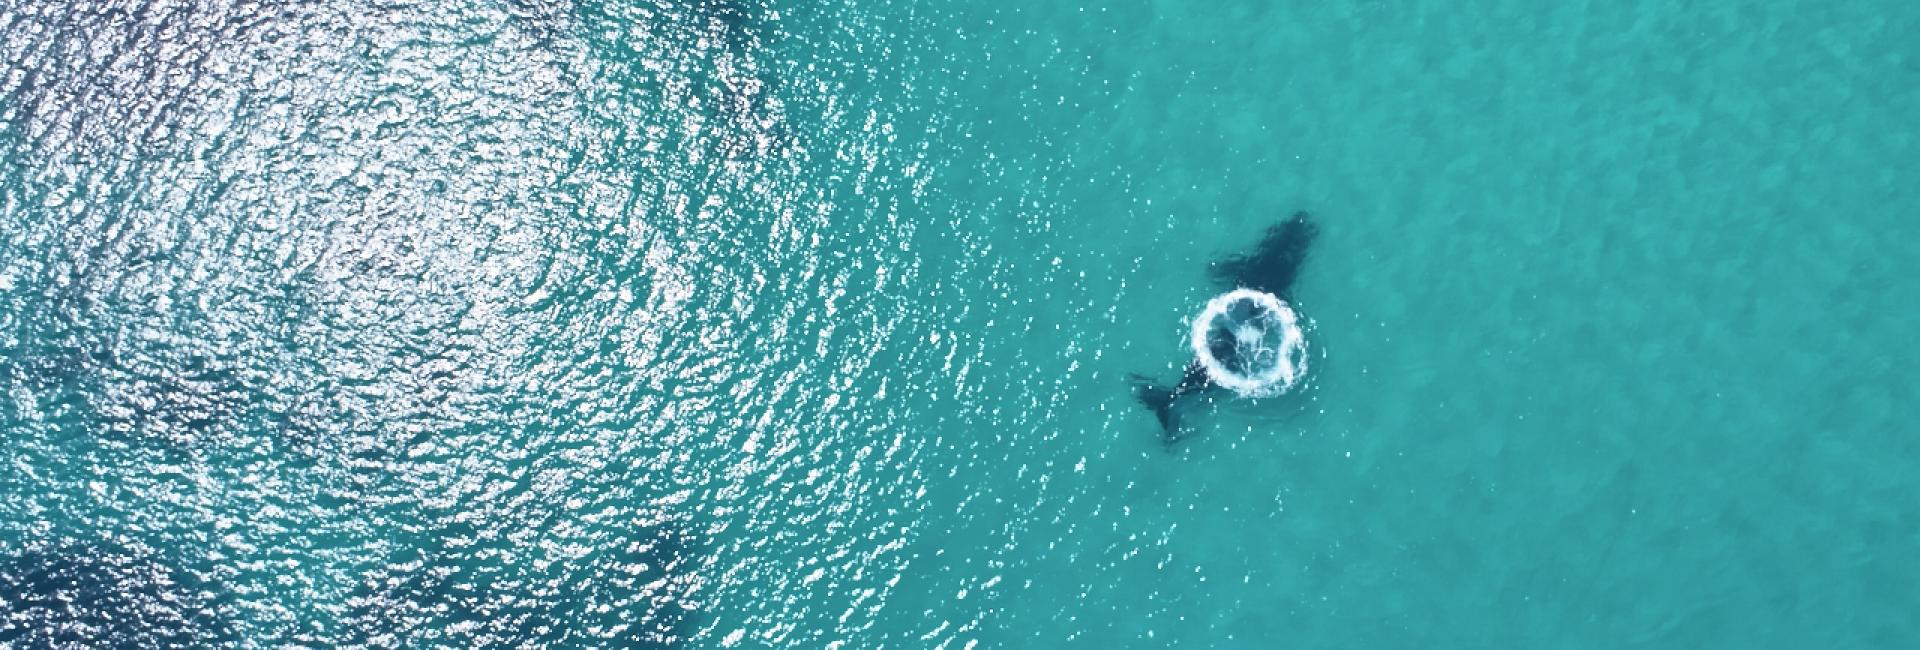 Whale watching, Dunsborough, Australia's South West